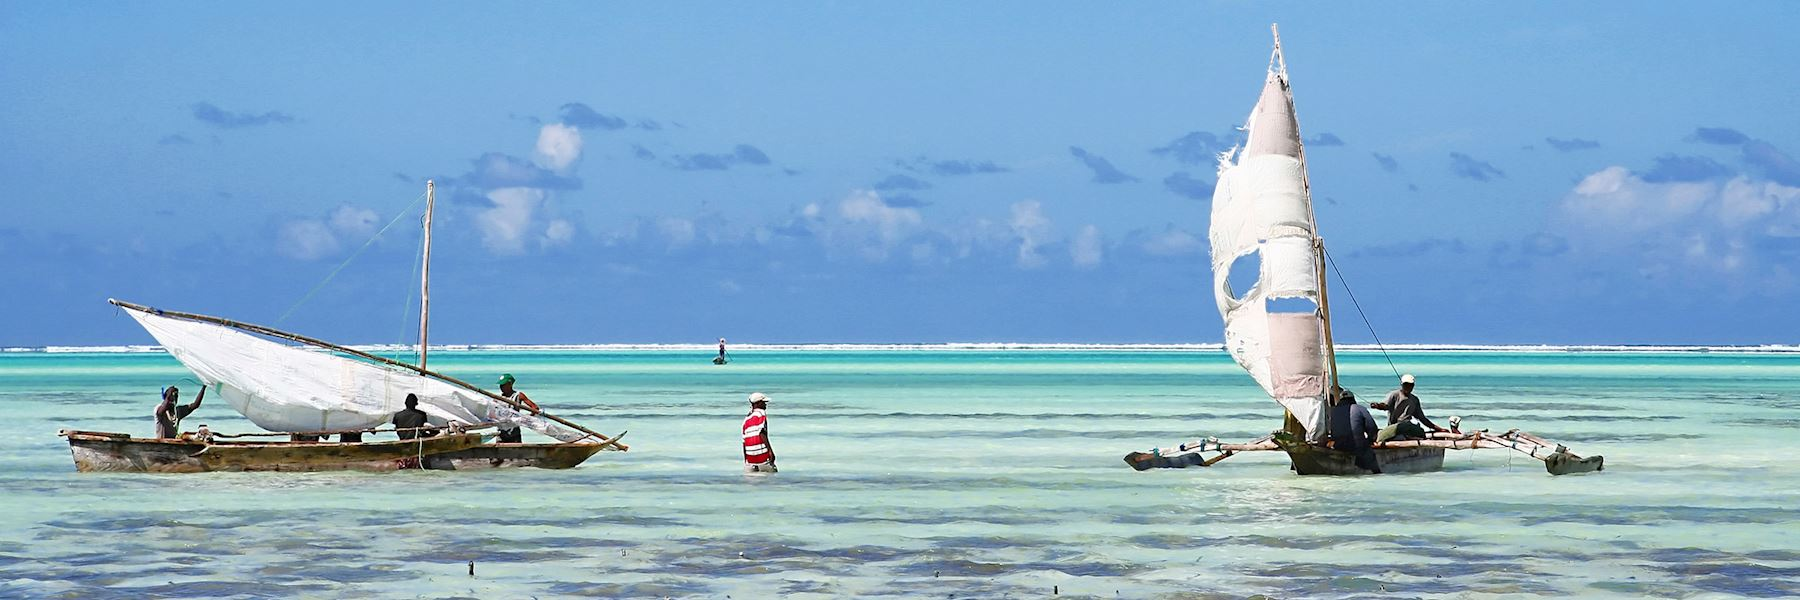 Zanzibar Archipelago travel advice